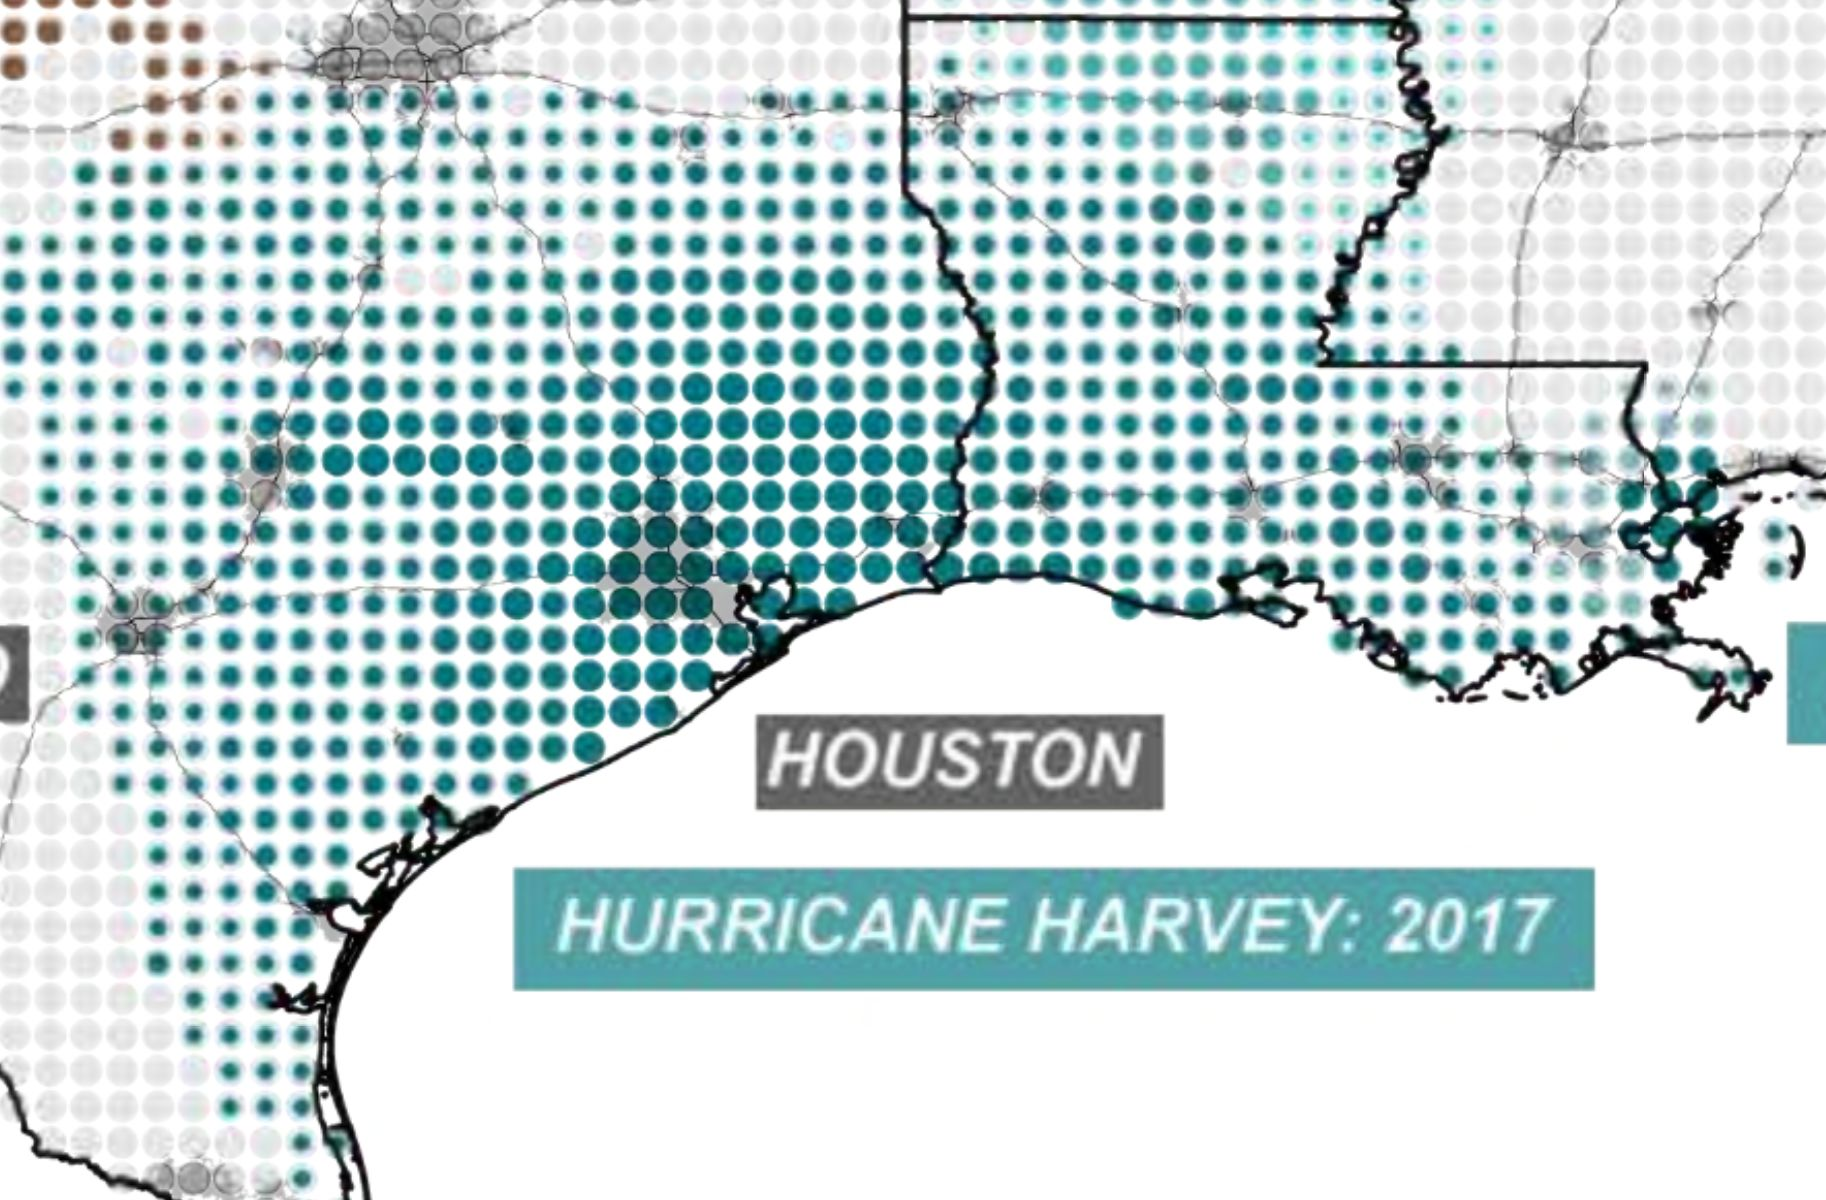 An excerpt from the 2100 Project atlas shows natural disasters that have been made worse by climate change, exacerbating the injustices already borne by people in poverty and communities of color